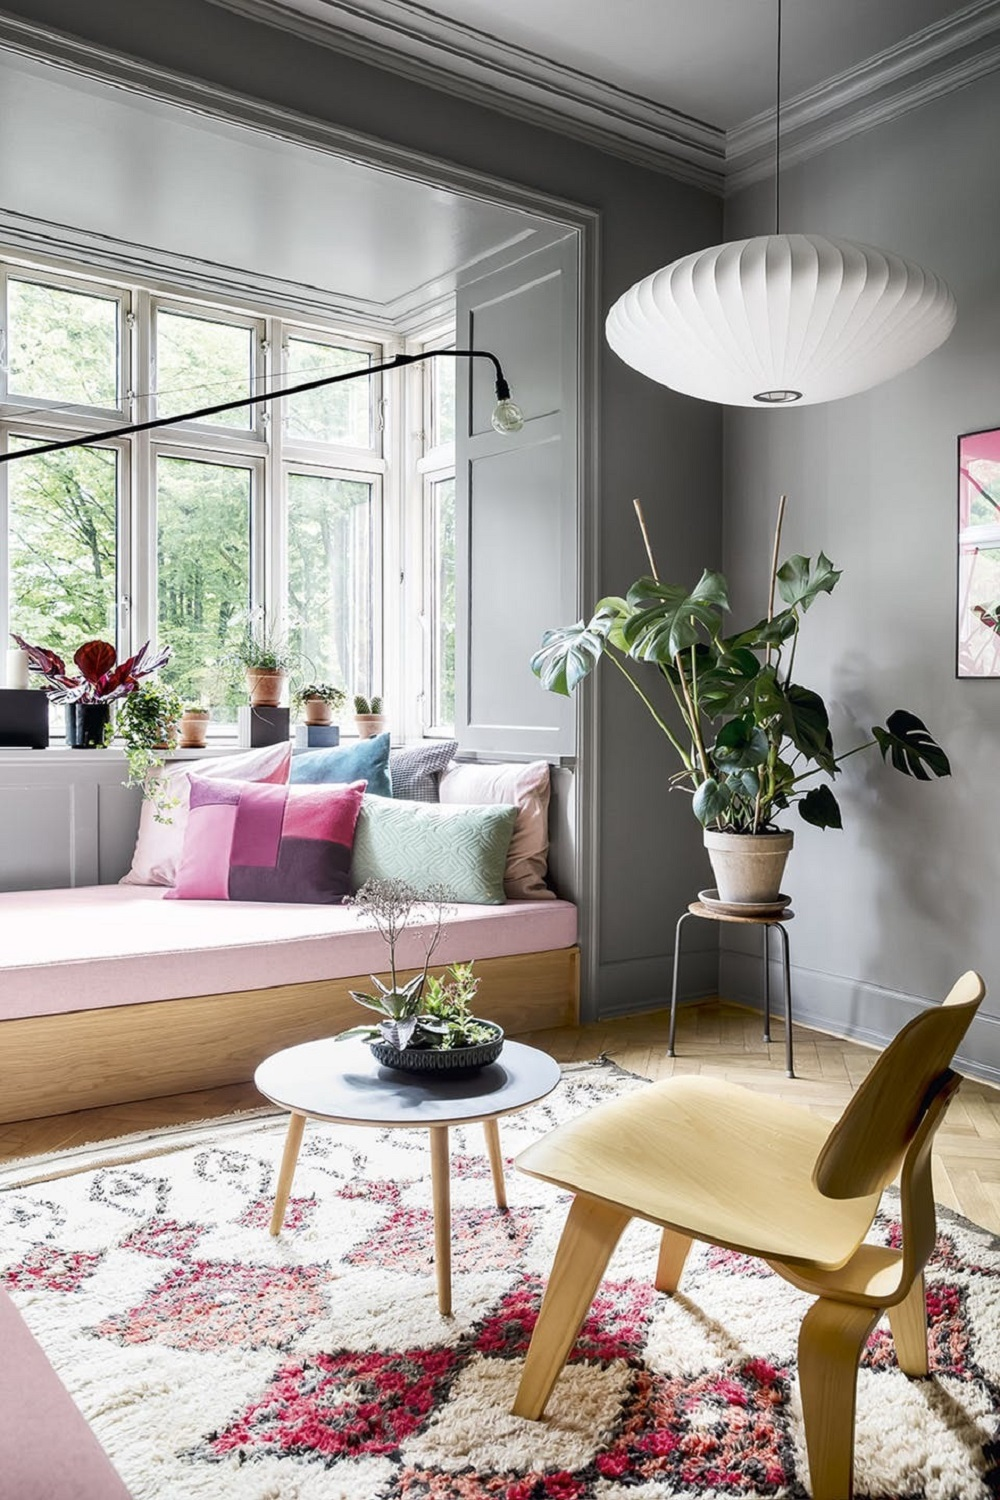 A pink & grey beauty. I especially love that window seat | photo by Christina Kayser Onsgaard